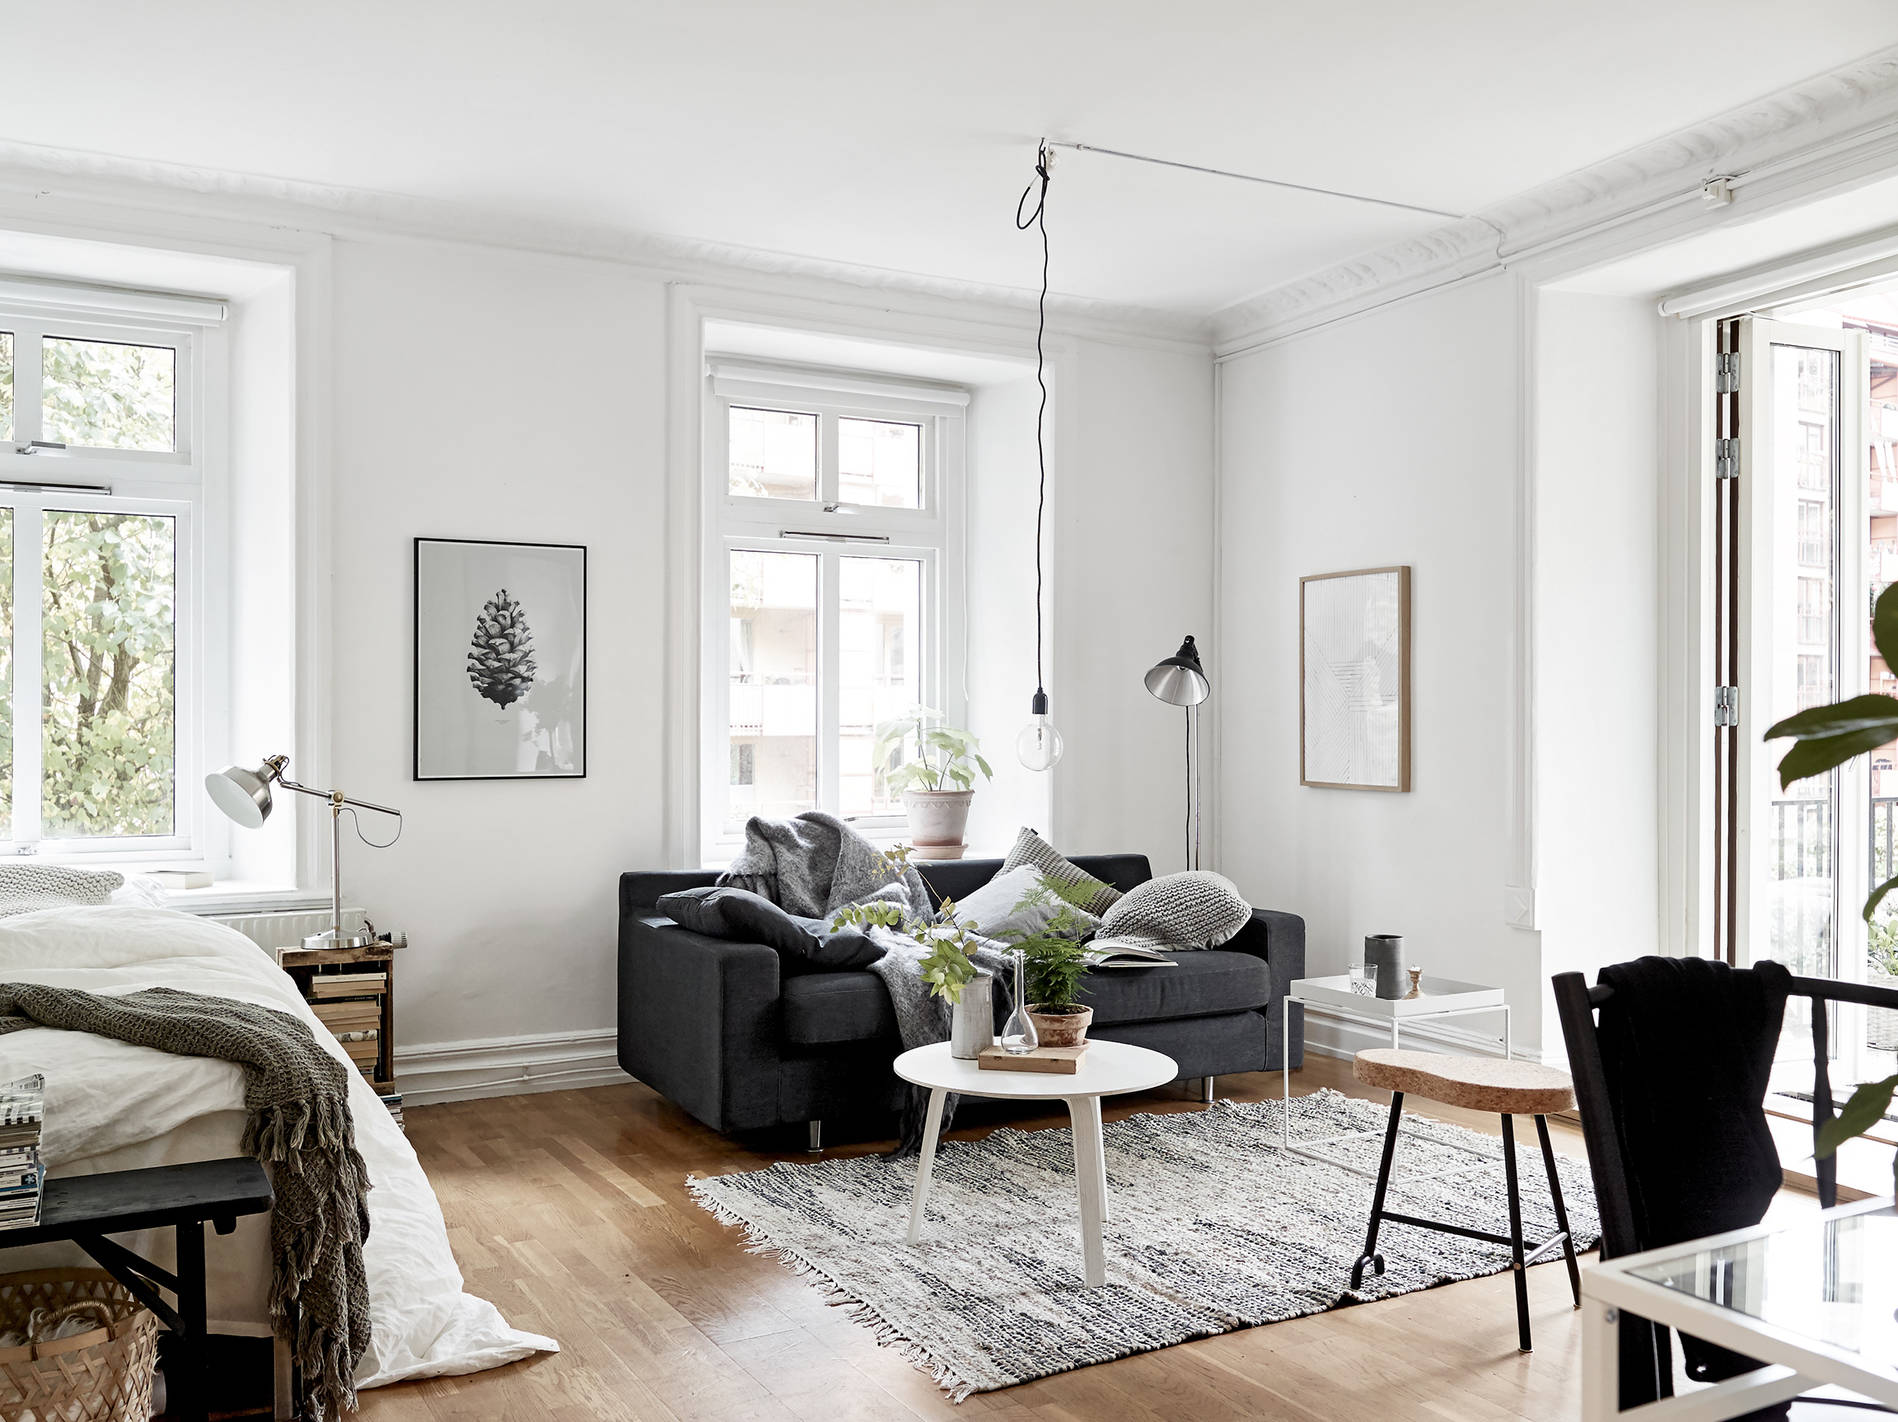 Cozy one room flat coco lapine designcoco lapine design for Blog decoration interieur scandinave